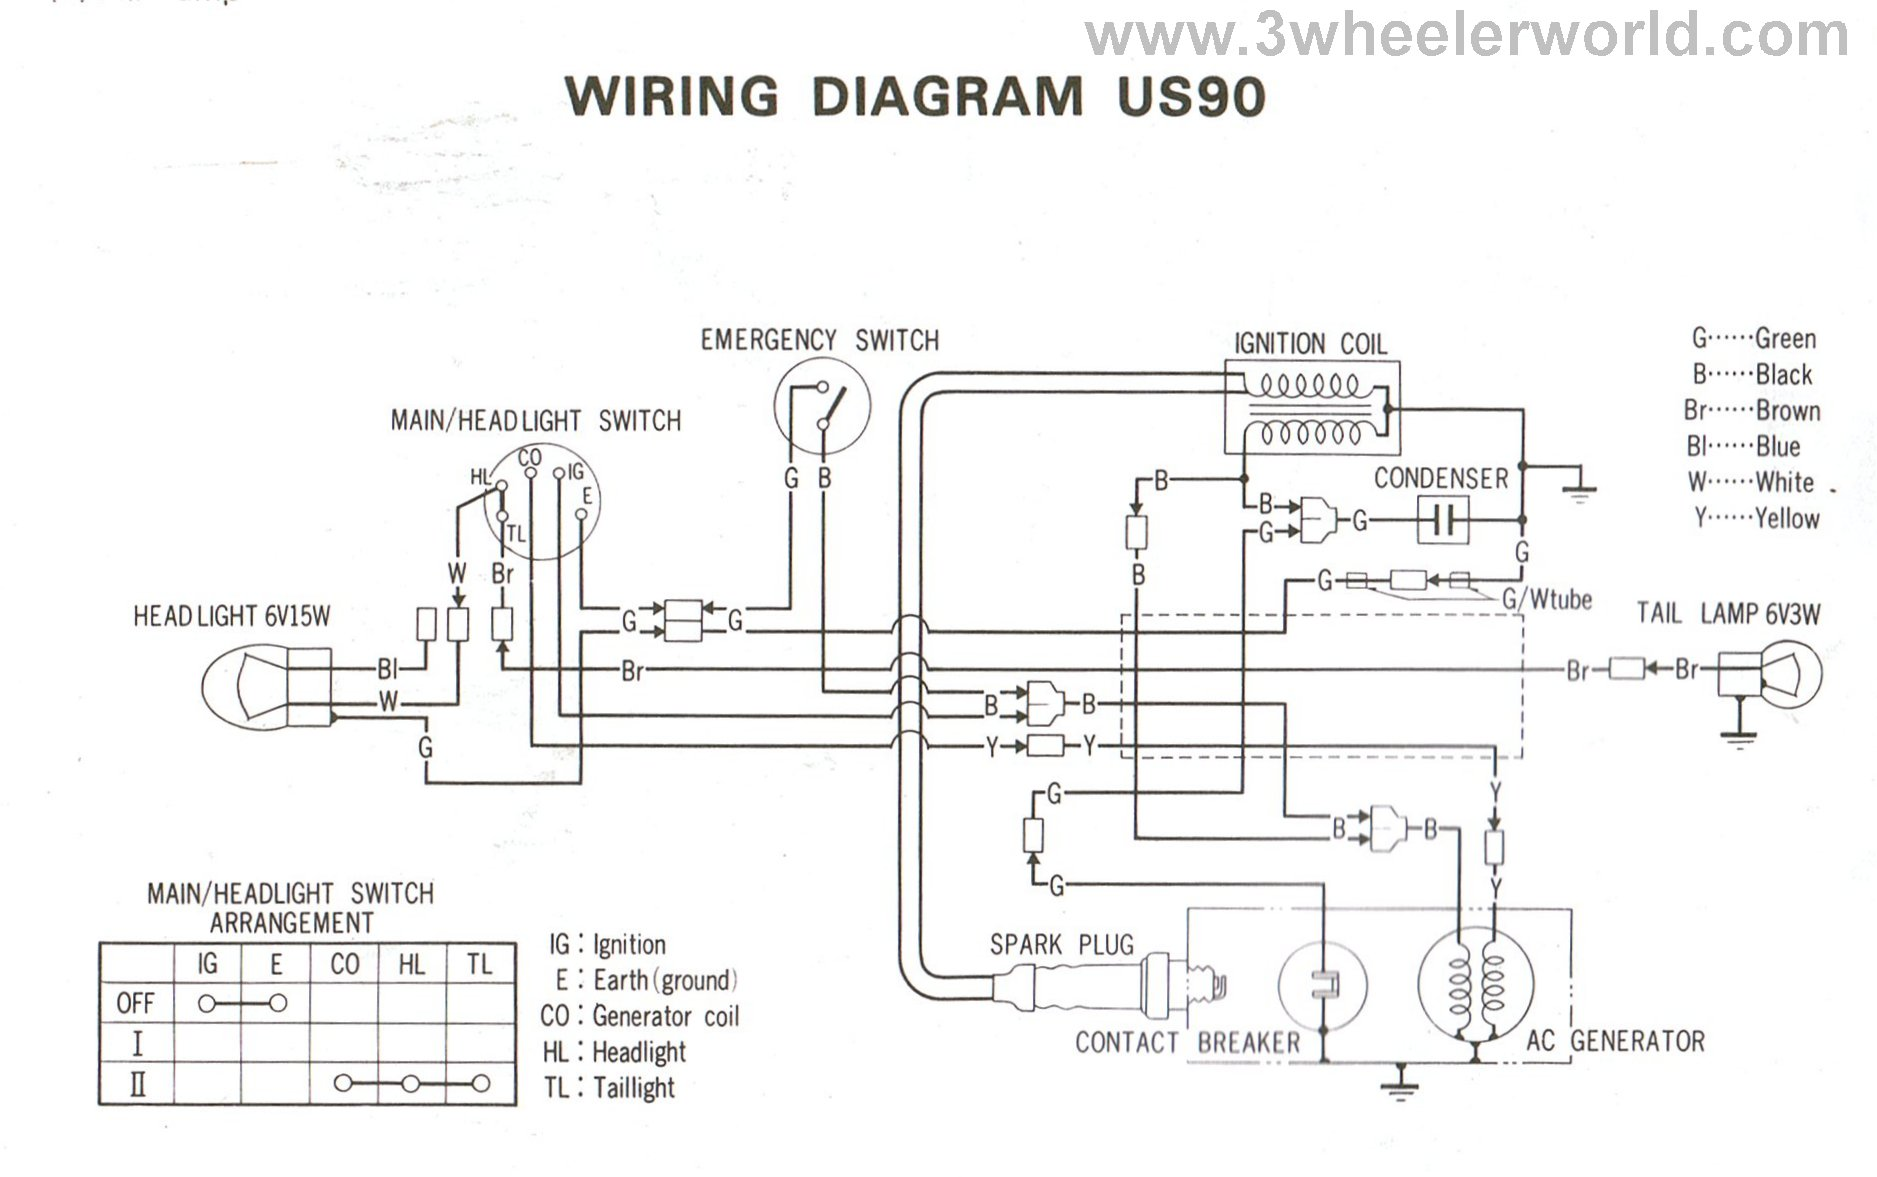 power wheels kawasaki wiring diagram square d transformer 4 wheeler free engine